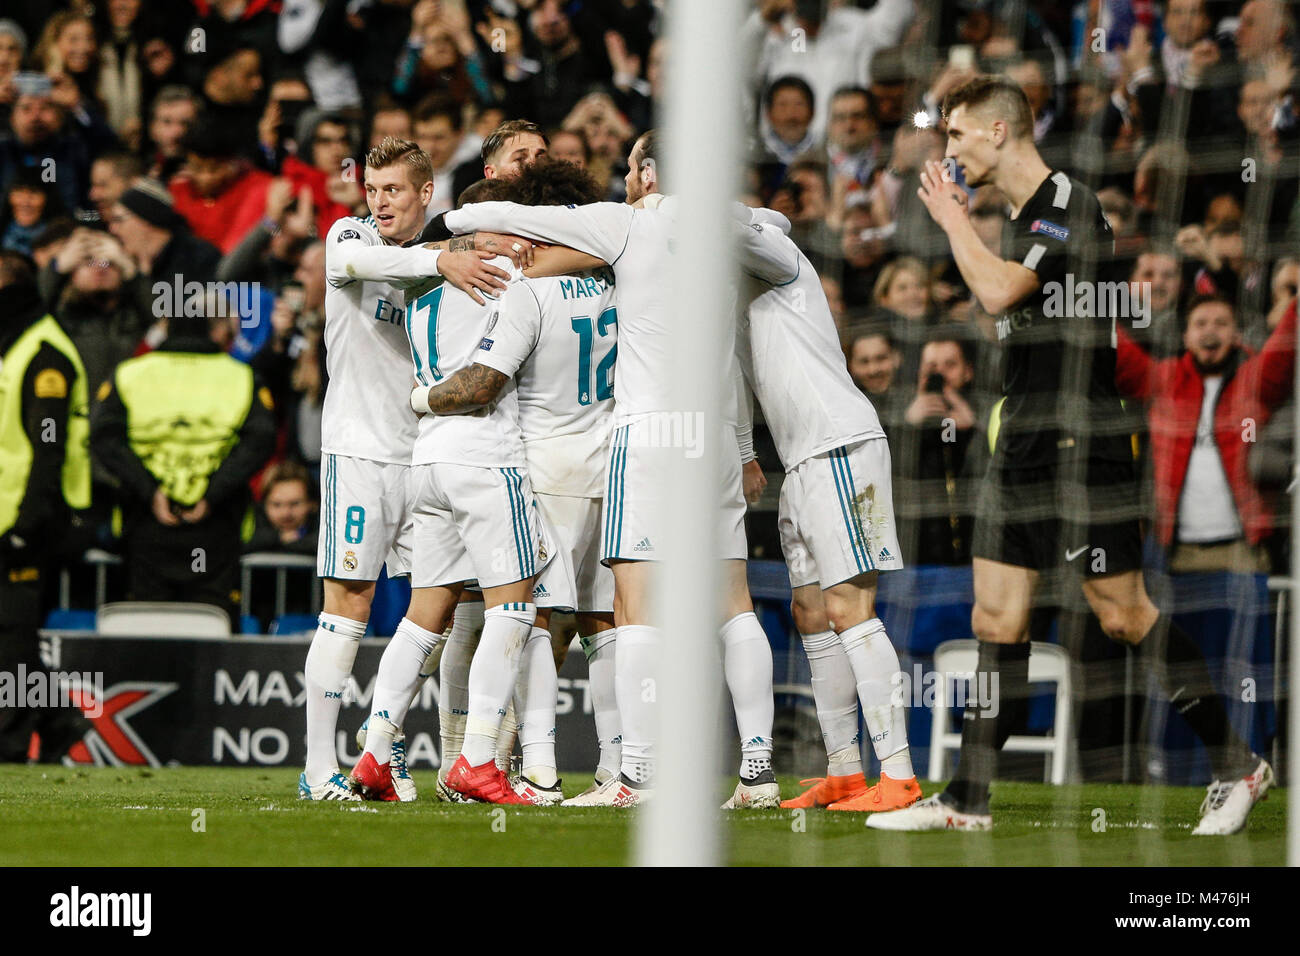 Marcelo Viera Real Madrid Celebrates His Goal Which Made It 3